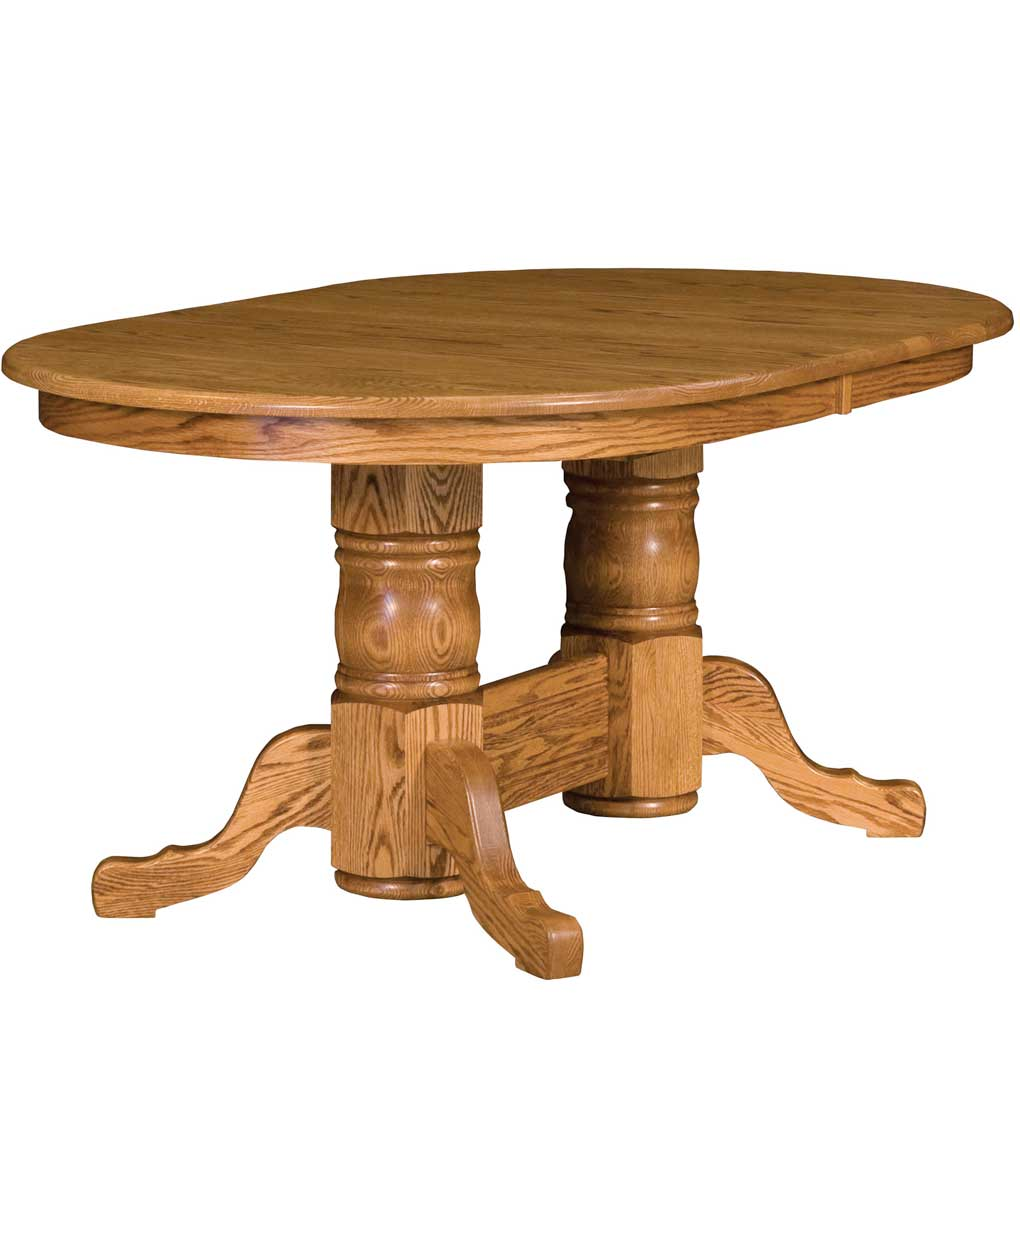 Traditional Double Pedestal Amish Table